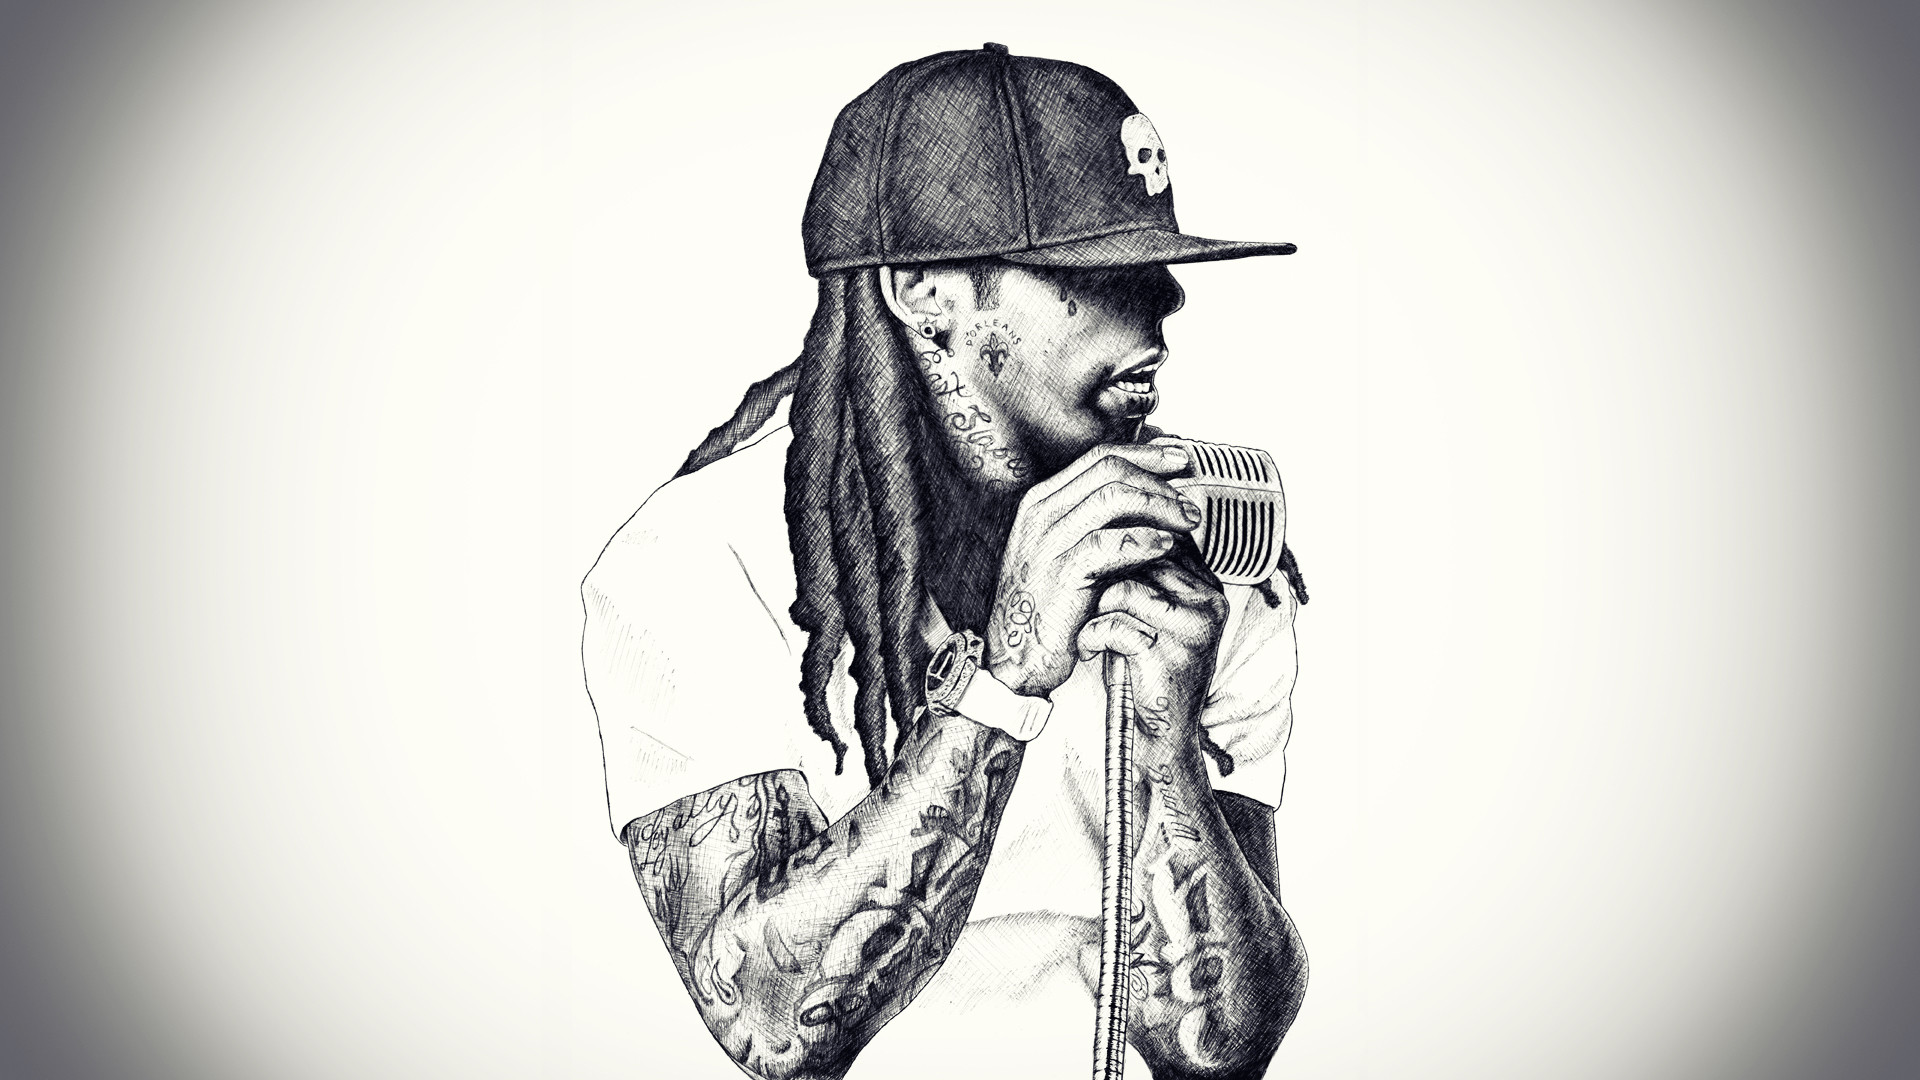 1920x1080  Wallpaper lil wayne, rap, singer, microphone, baseball cap,  dreadlocks